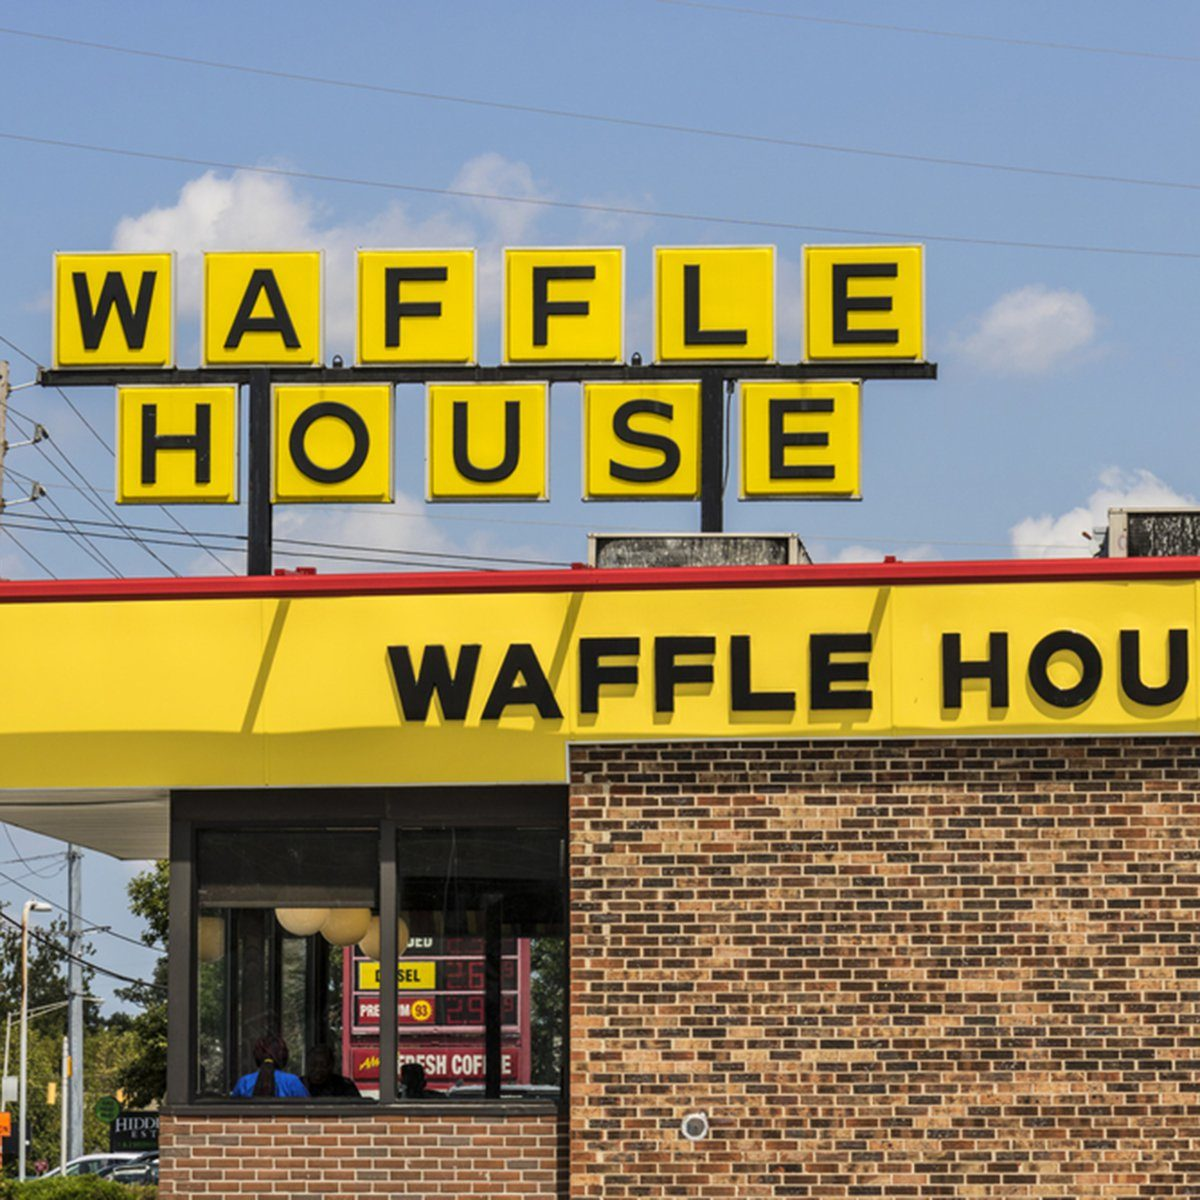 These Are the Oldest Chain Restaurants in the Country